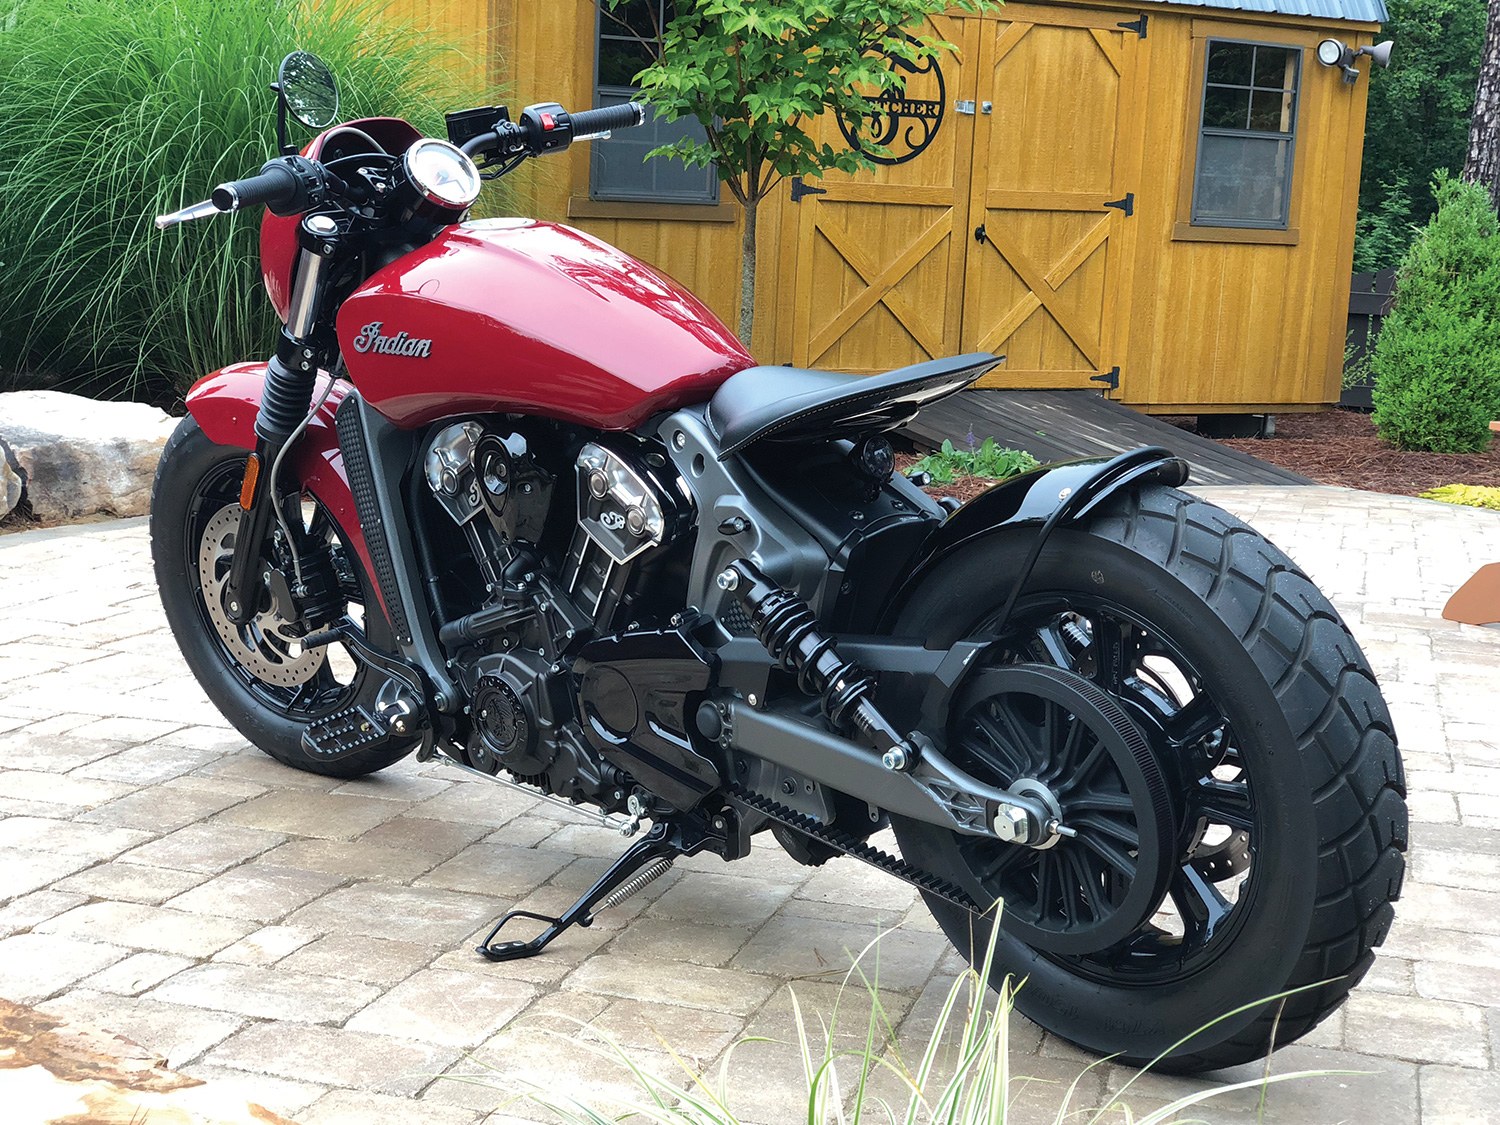 A Dirty Bird Look Alike Indian Scout Bobber Harley Magazine American Iron Magazine Motorcycle Reviews Forums And News Aimag Com